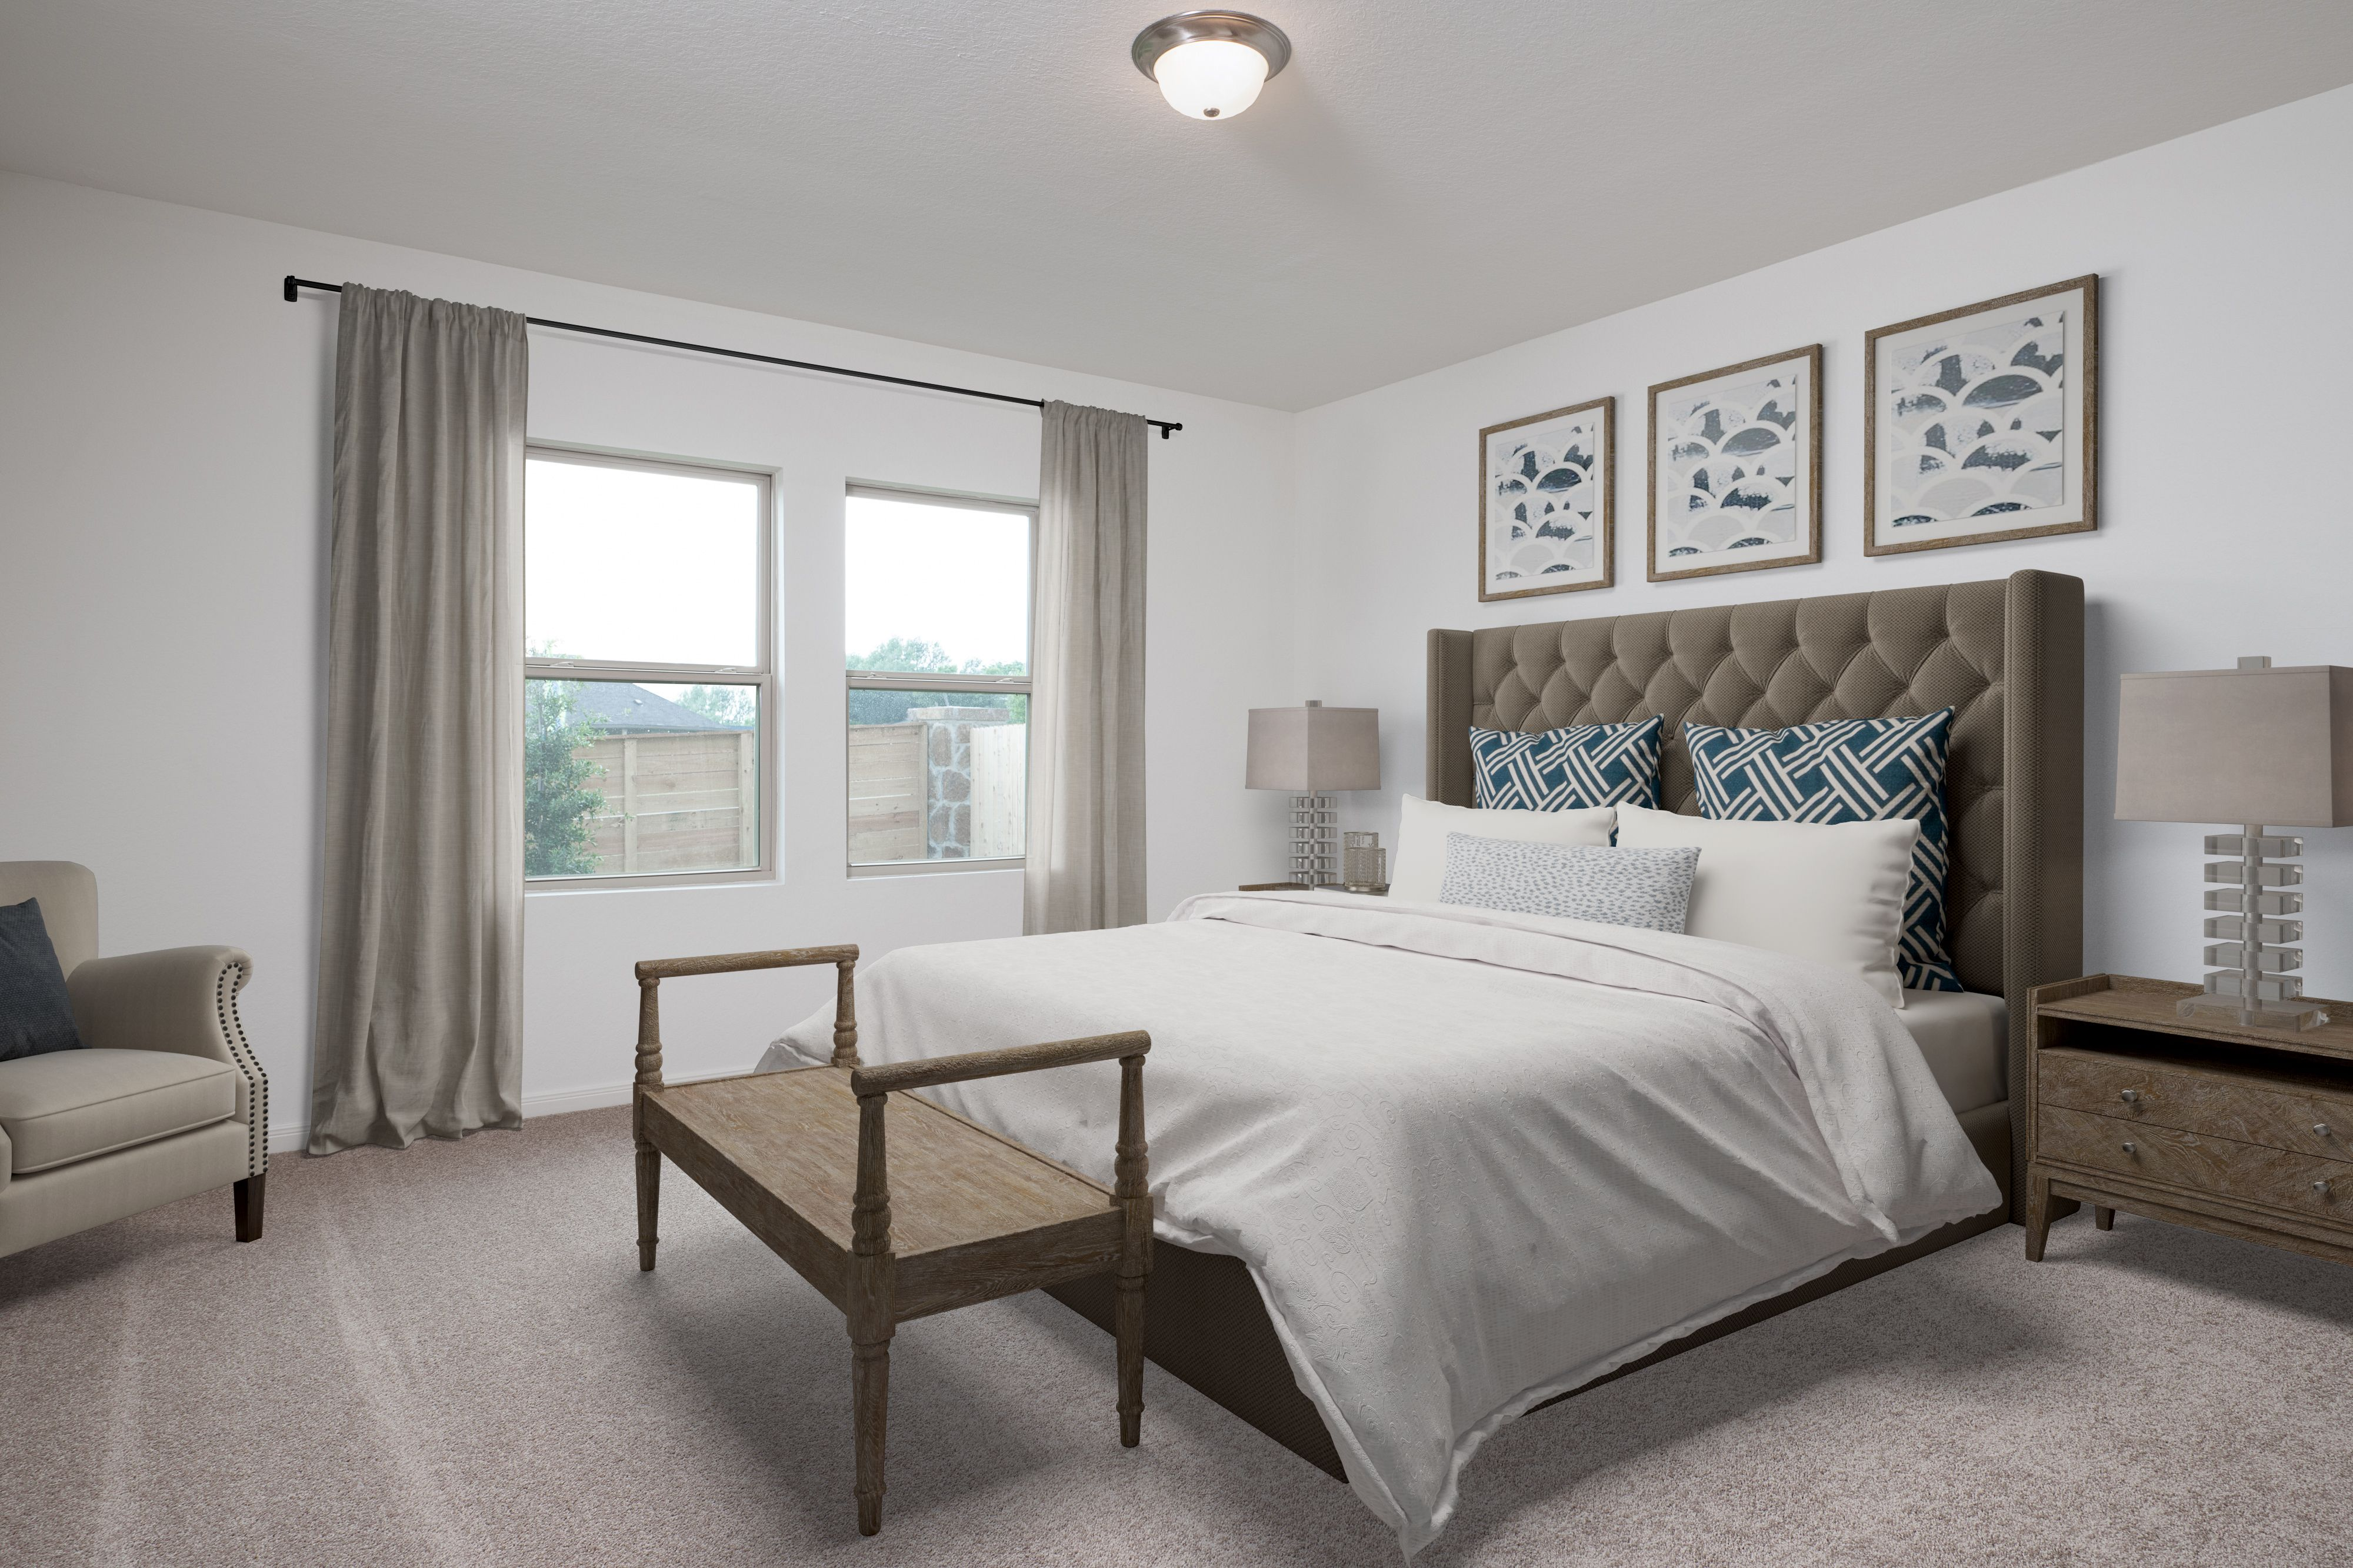 Bedroom featured in the Moonbeam By Starlight Homes in Daytona Beach, FL